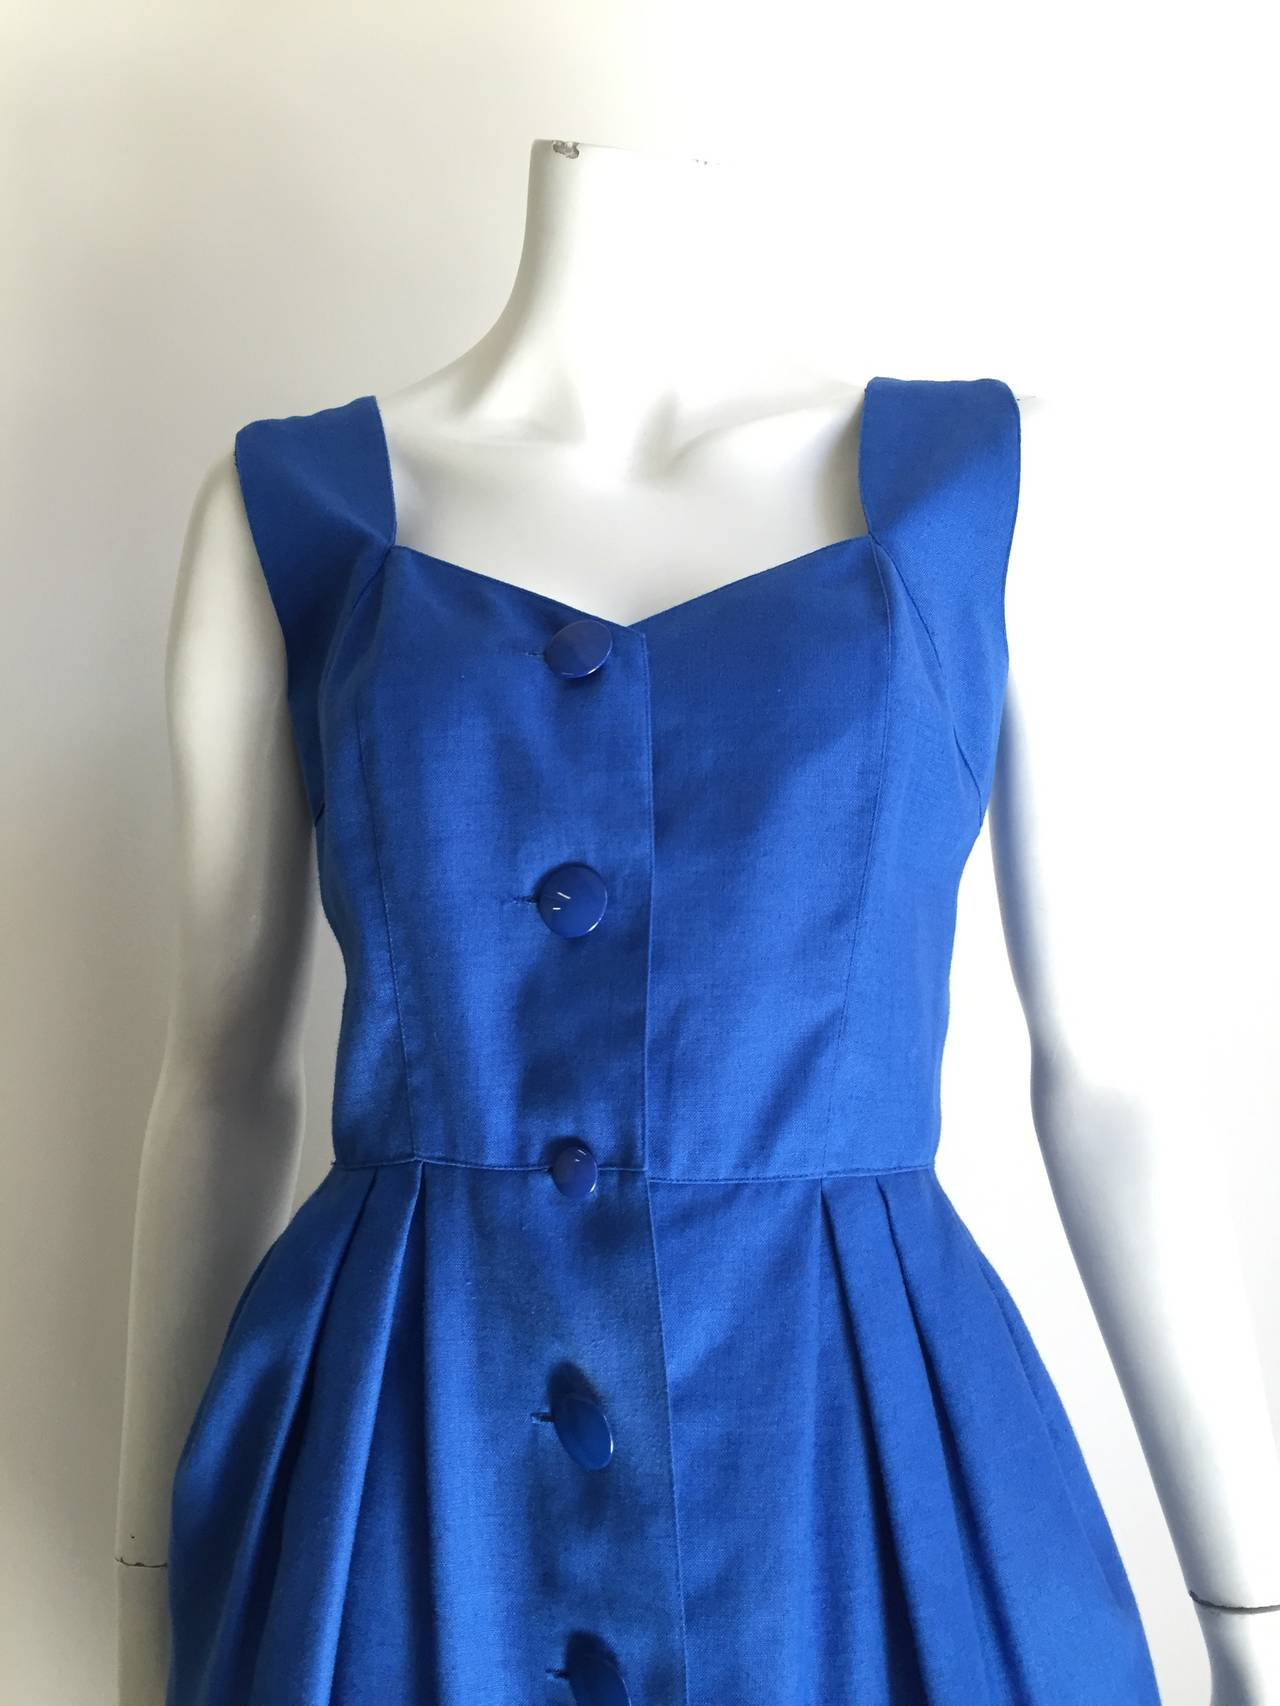 Guy Laroche Paris 80s blue dress with pockets size 6. 3